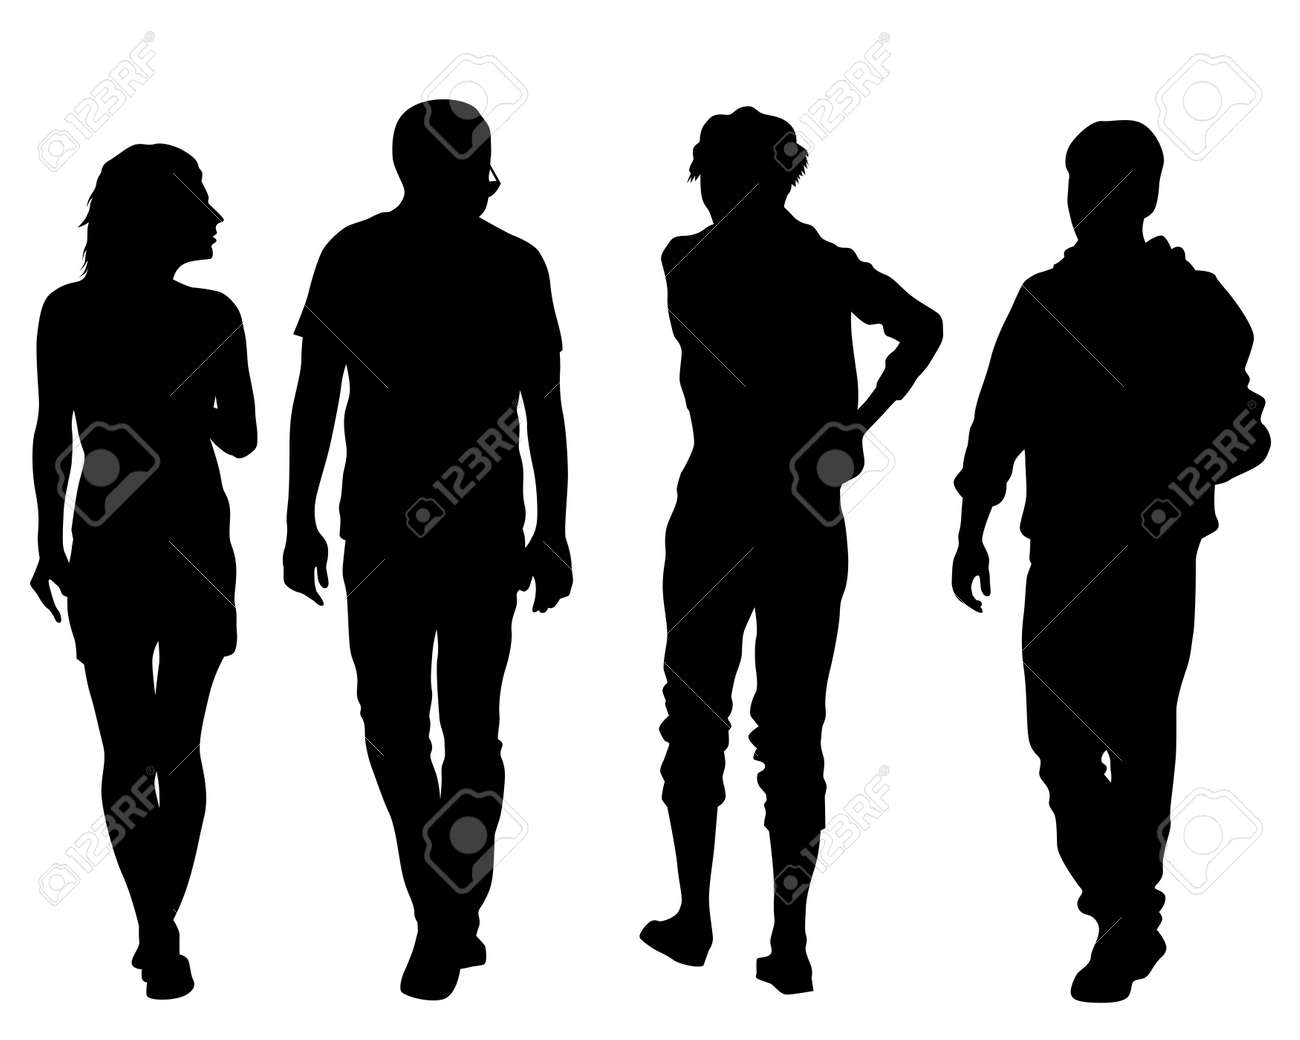 Big crowds people on street. Isolated silhouette on a white background - 144915896